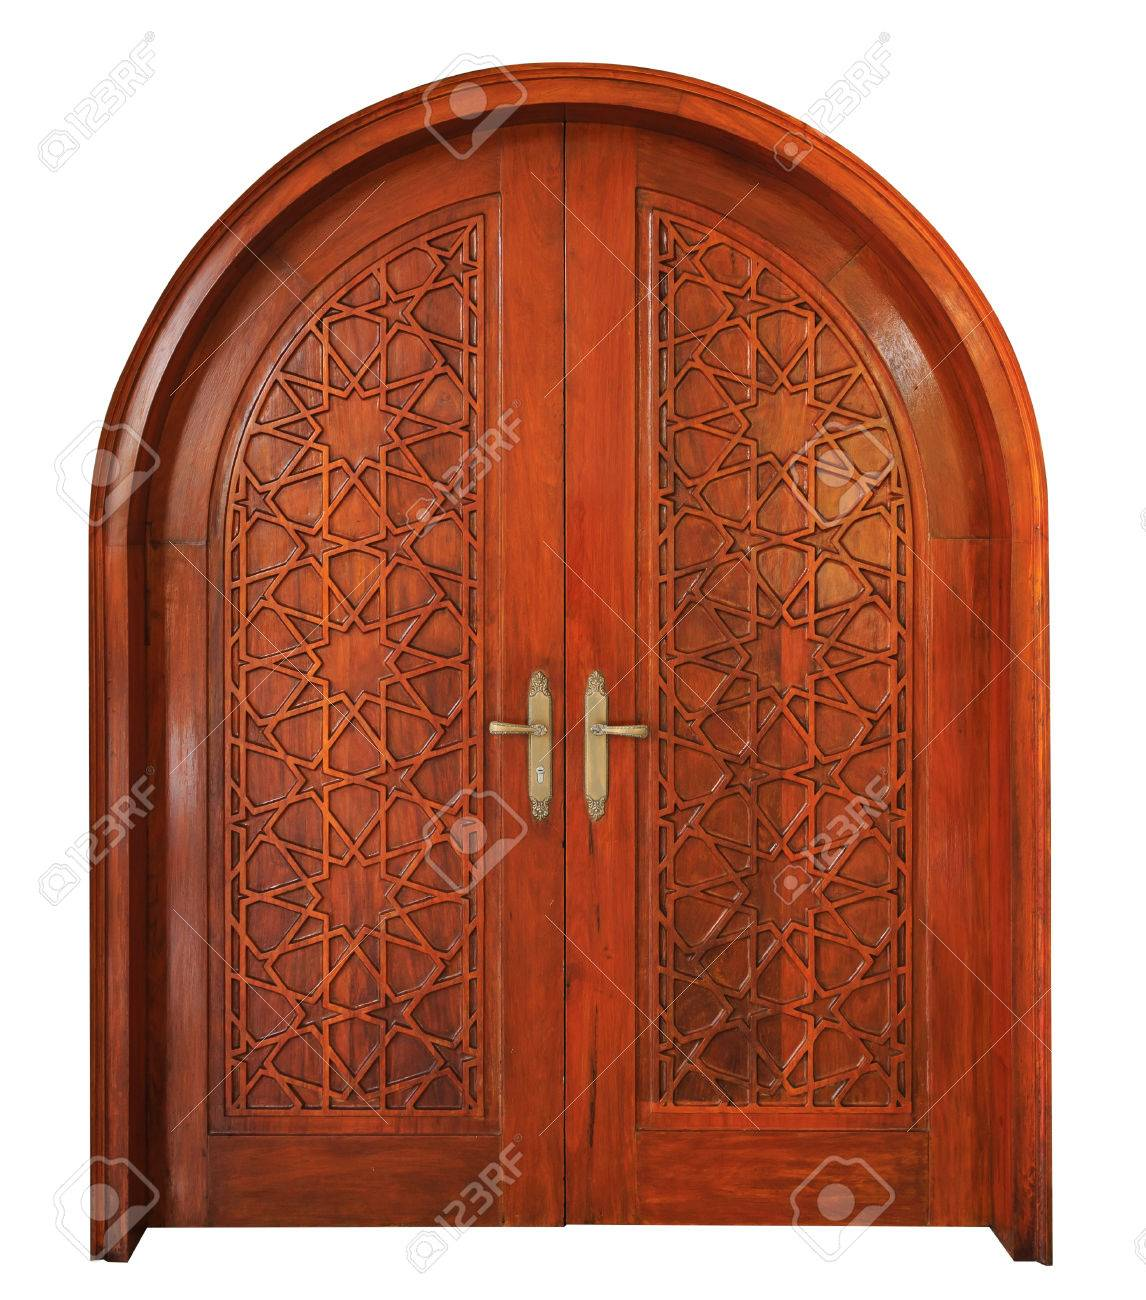 Star pattern of wooden Masjid door on isolated white background with clipping path Stock Photo -  sc 1 st  123RF.com & Star Pattern Of Wooden Masjid Door On Isolated White Background ...